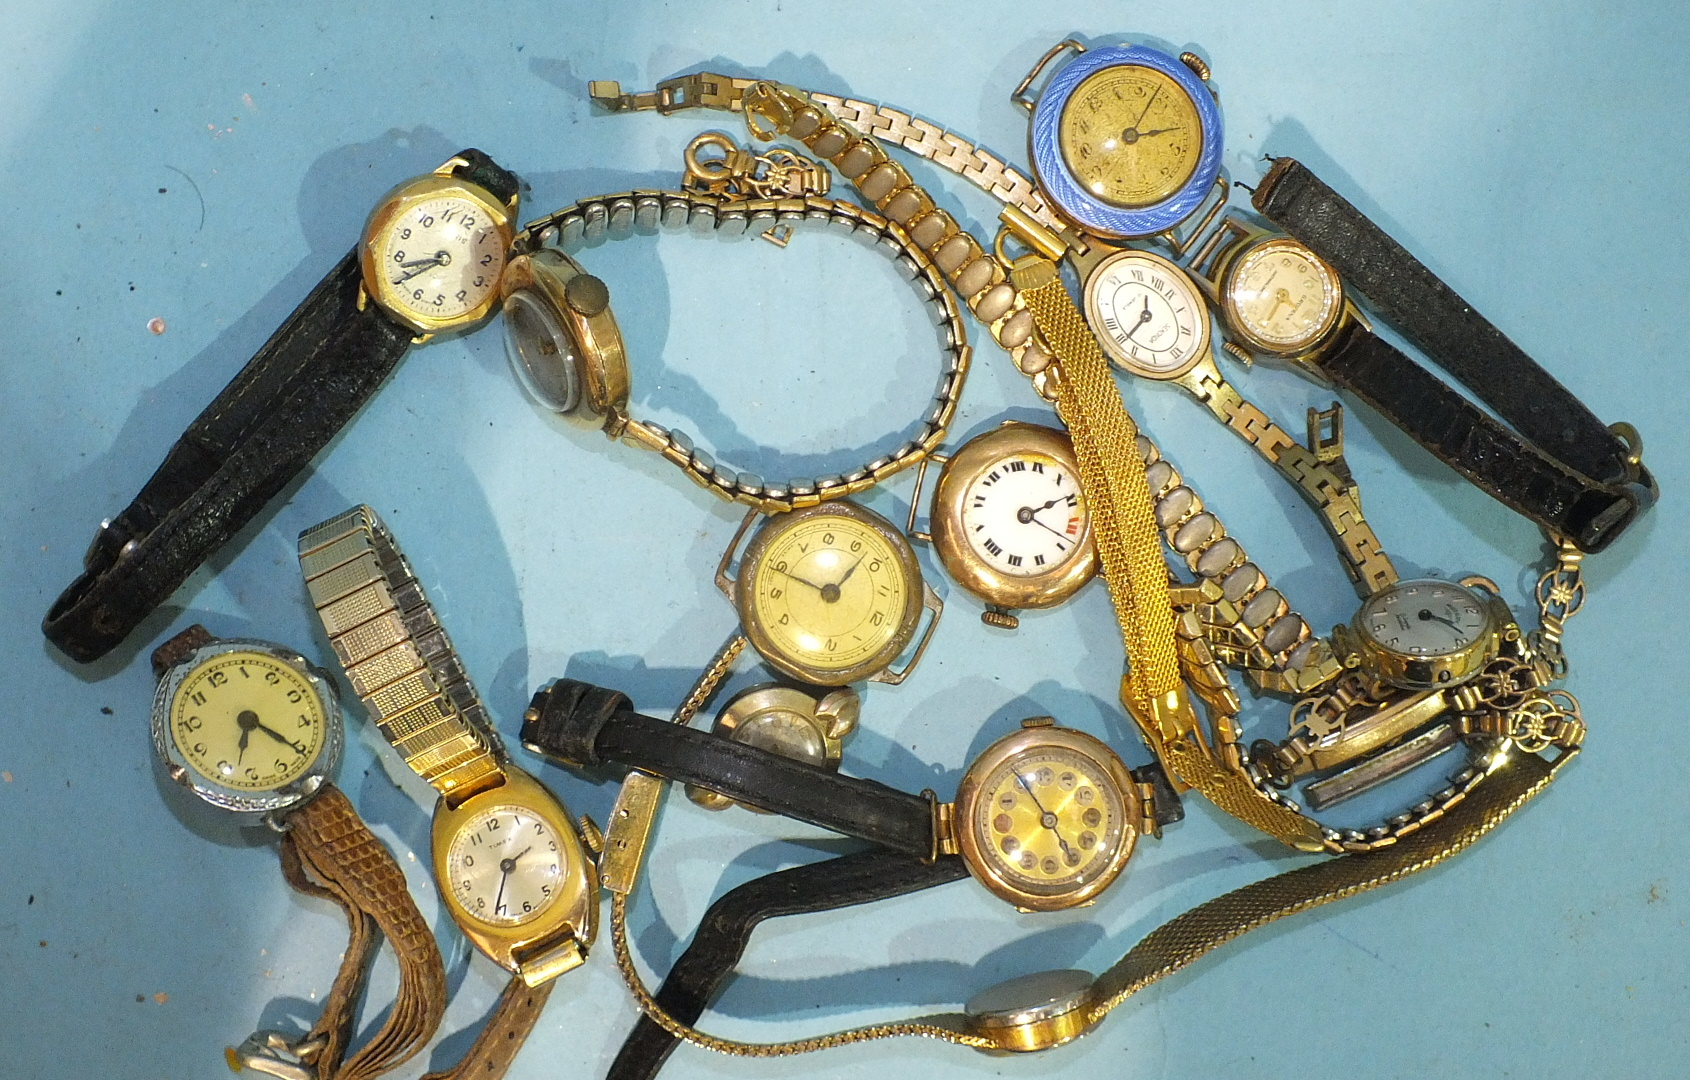 Lot 306 - Three ladies 9ct-gold-cased wrist watches, (a/f) and other wrist watches, (mainly a/f).